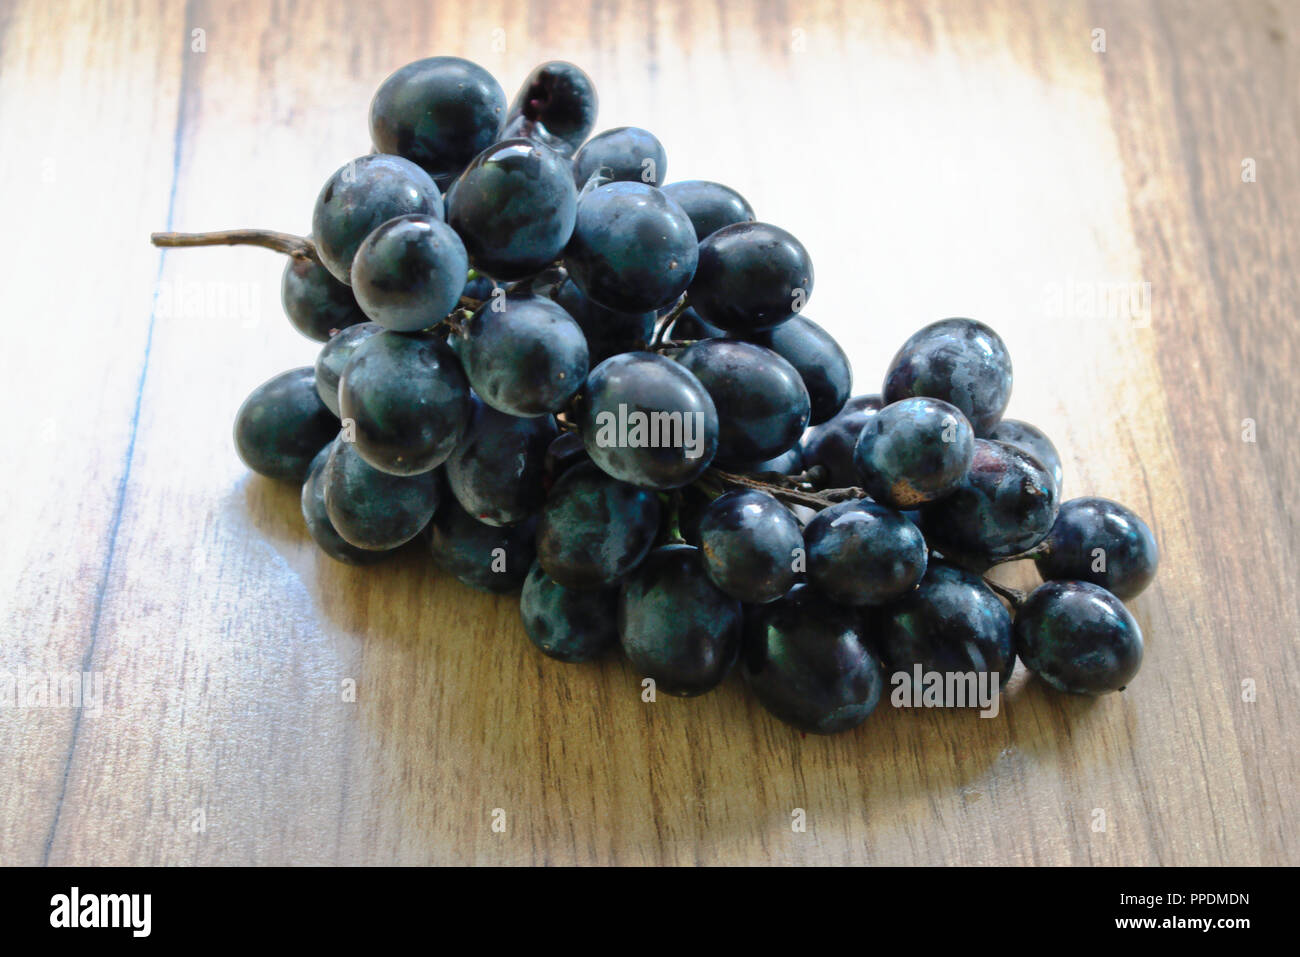 Closeup of grapes on a wooden table - Stock Image